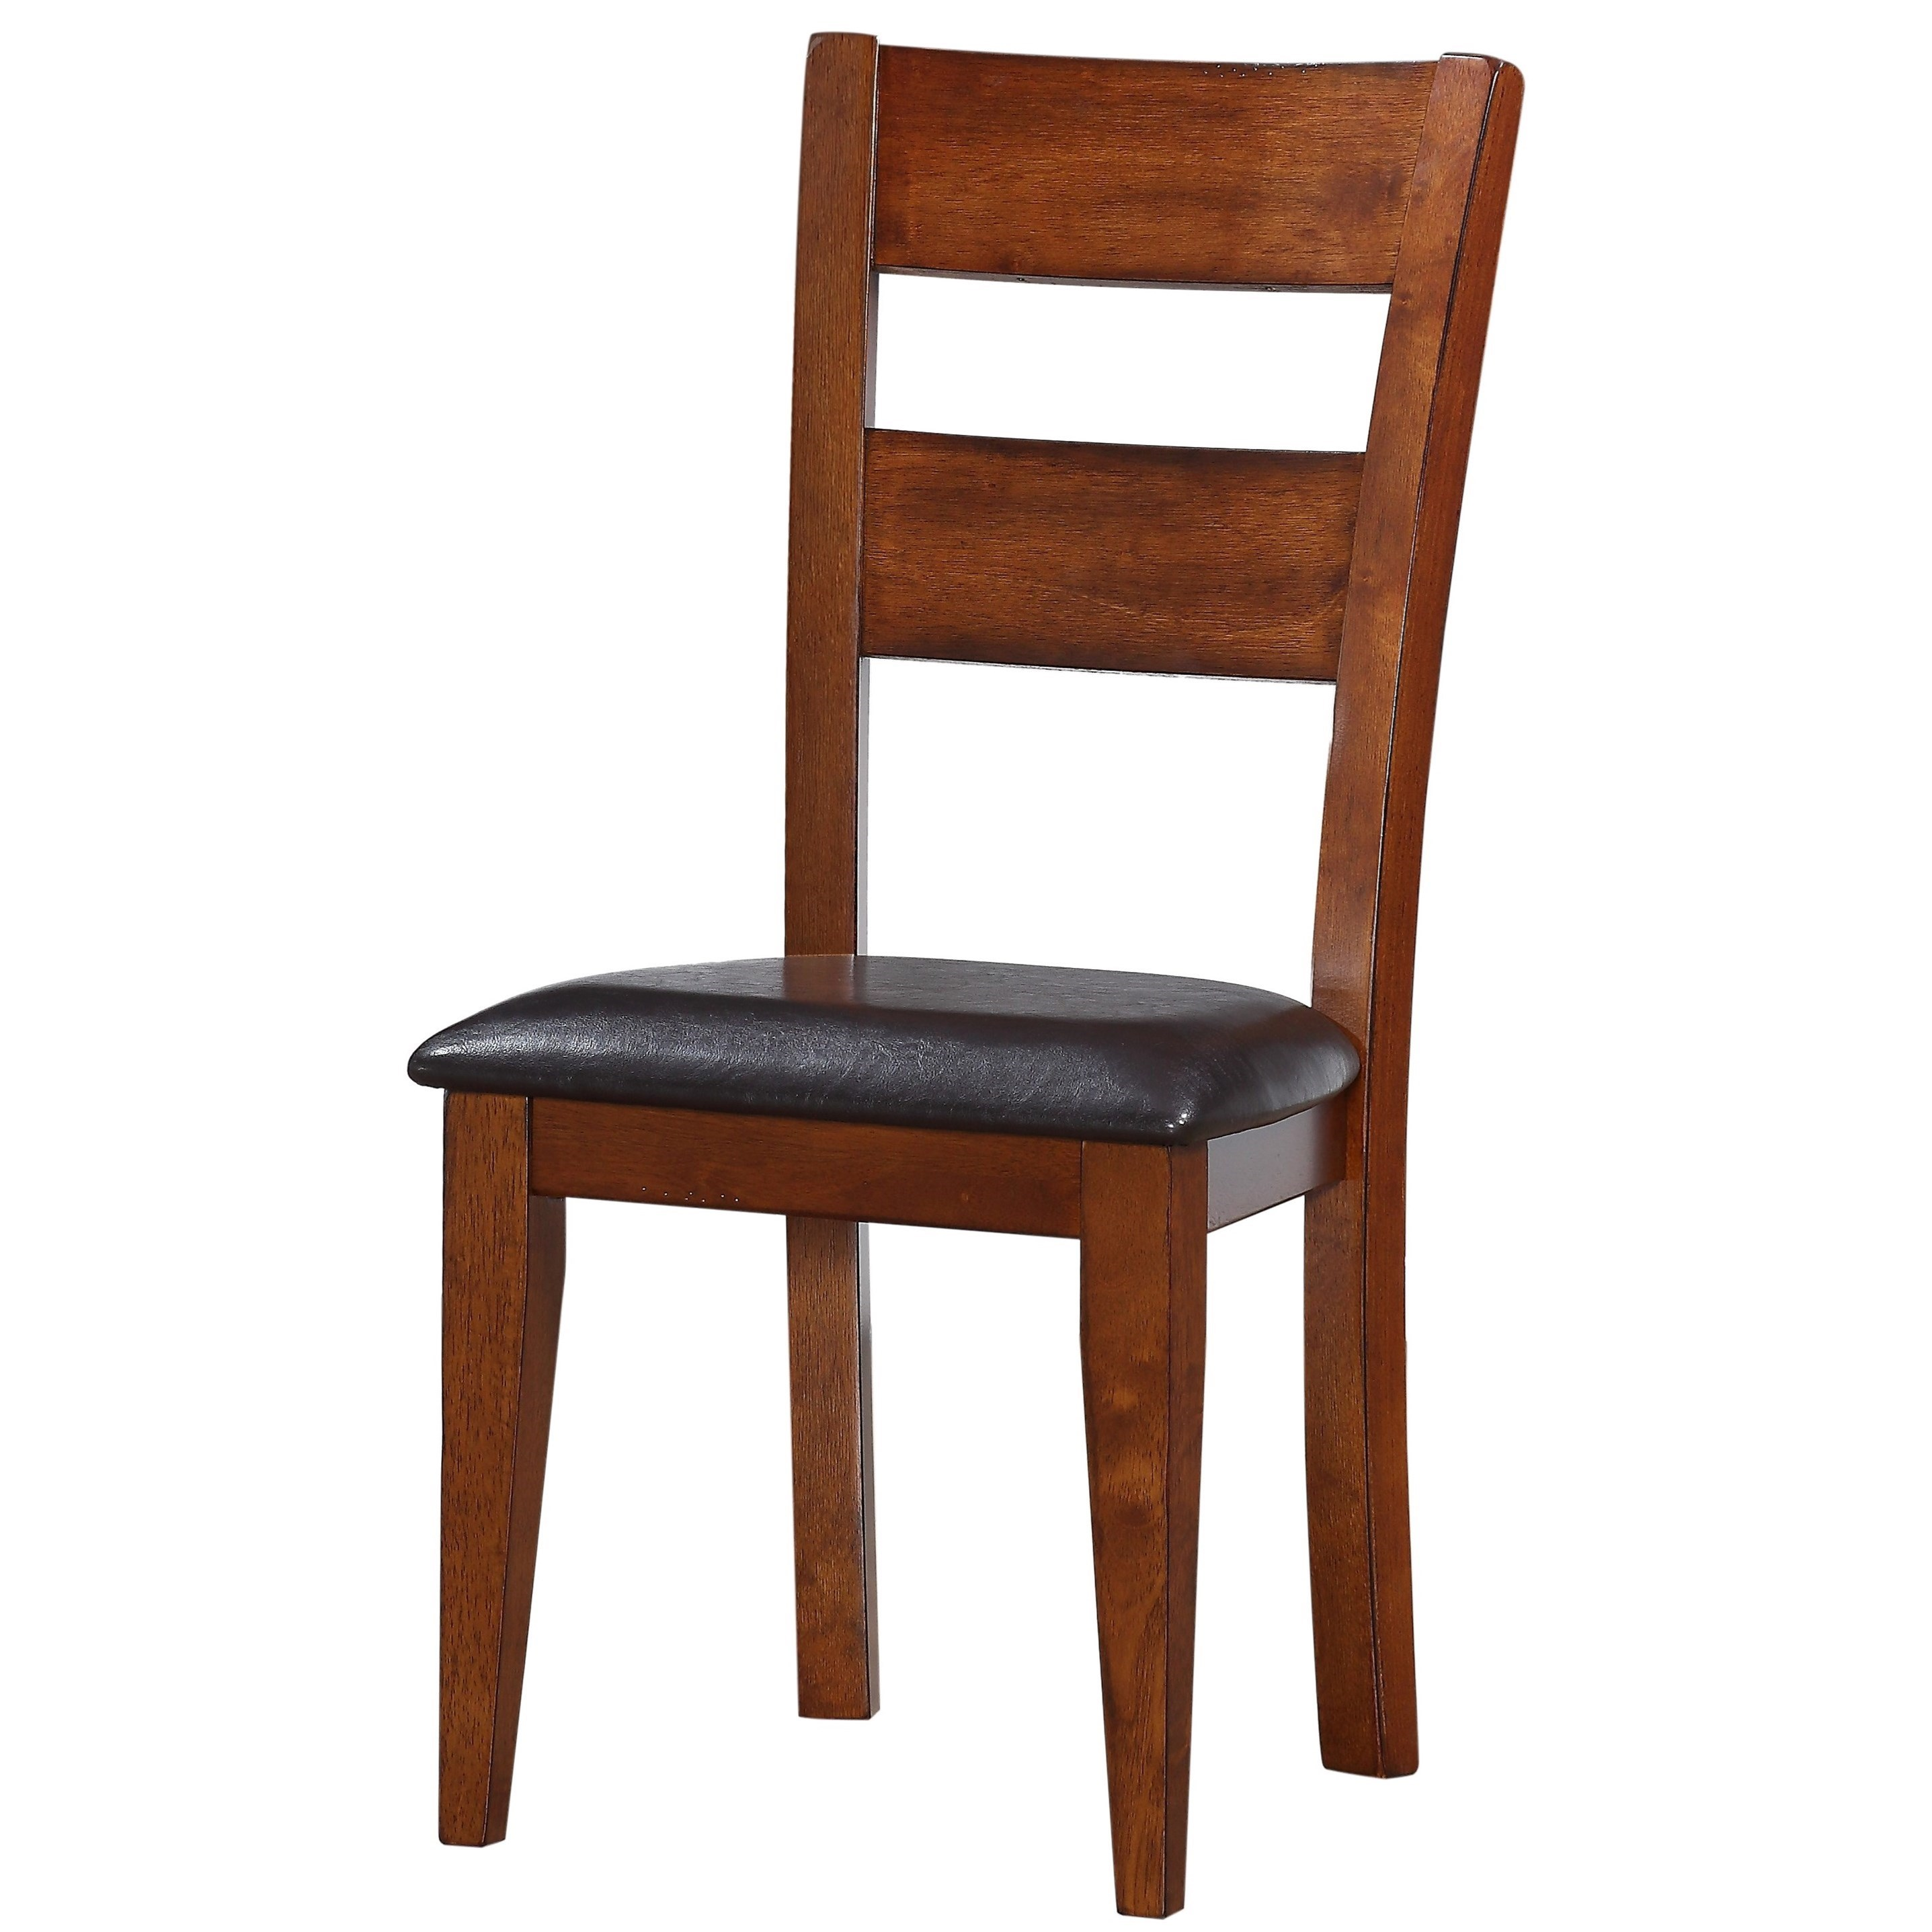 Fairwood Dining Chair by Emerald at Northeast Factory Direct